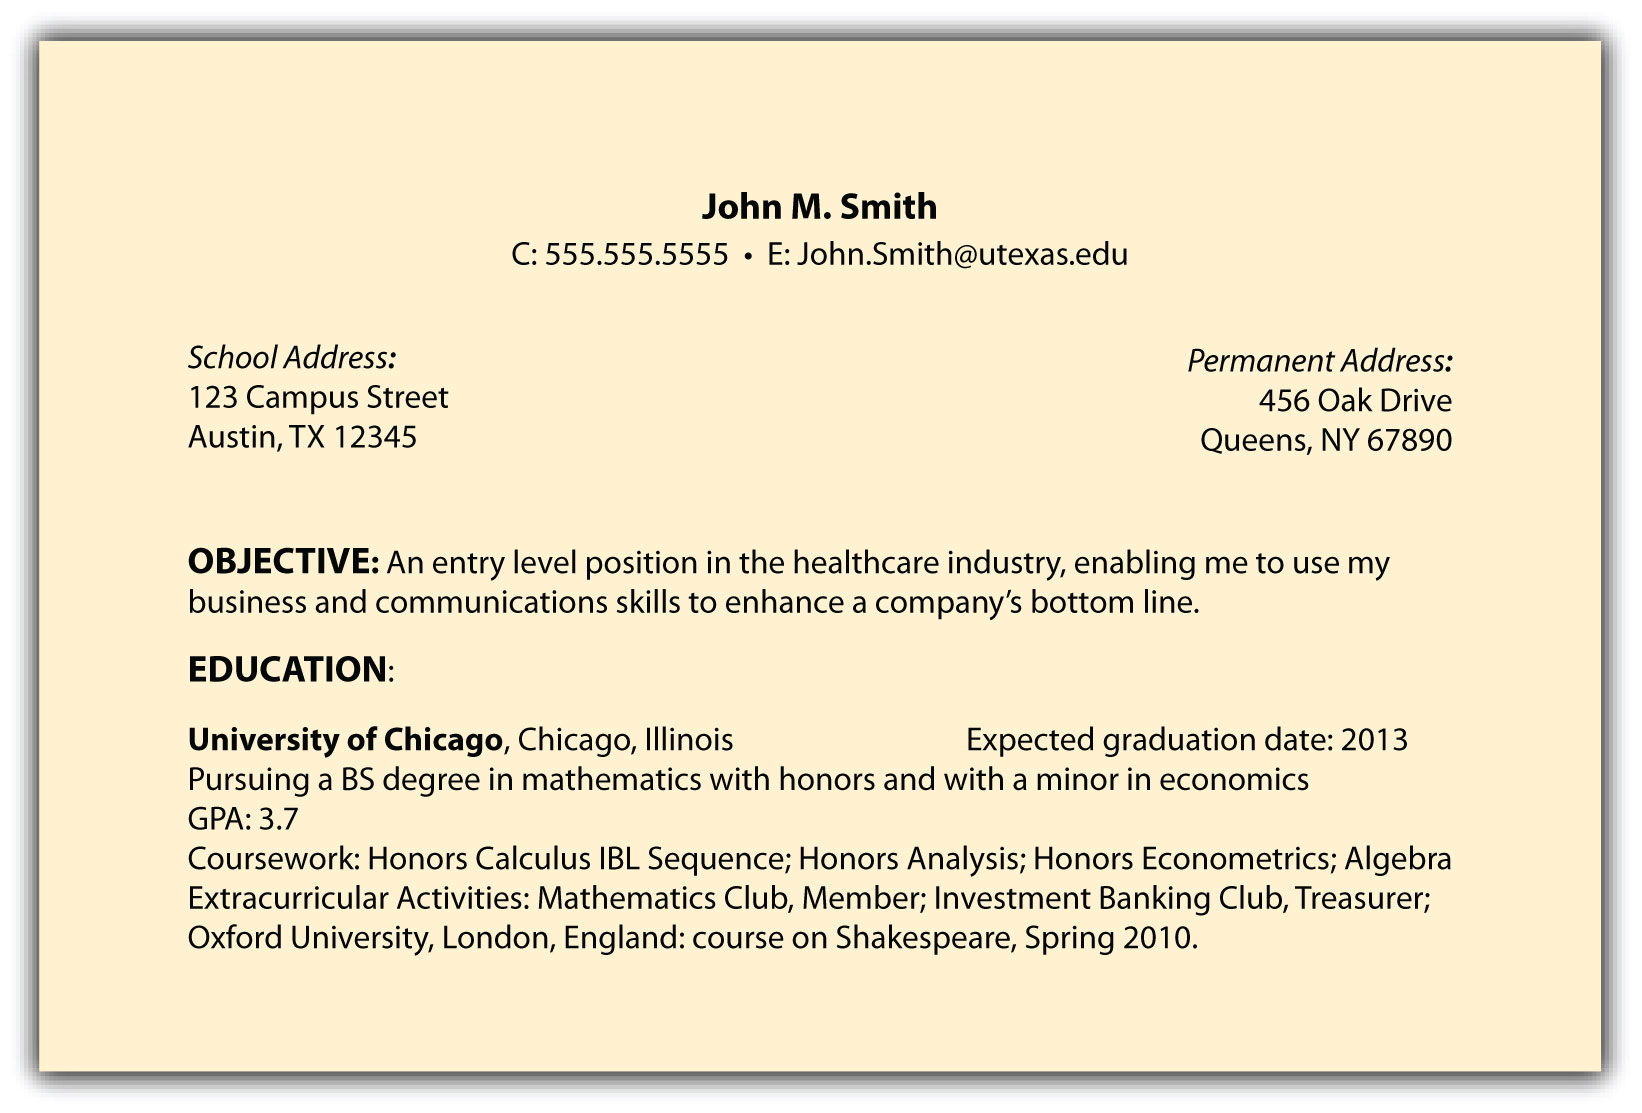 entry level job resume objective example career examples for nurse on tableau Resume Career Objective Examples For Resume Nurse